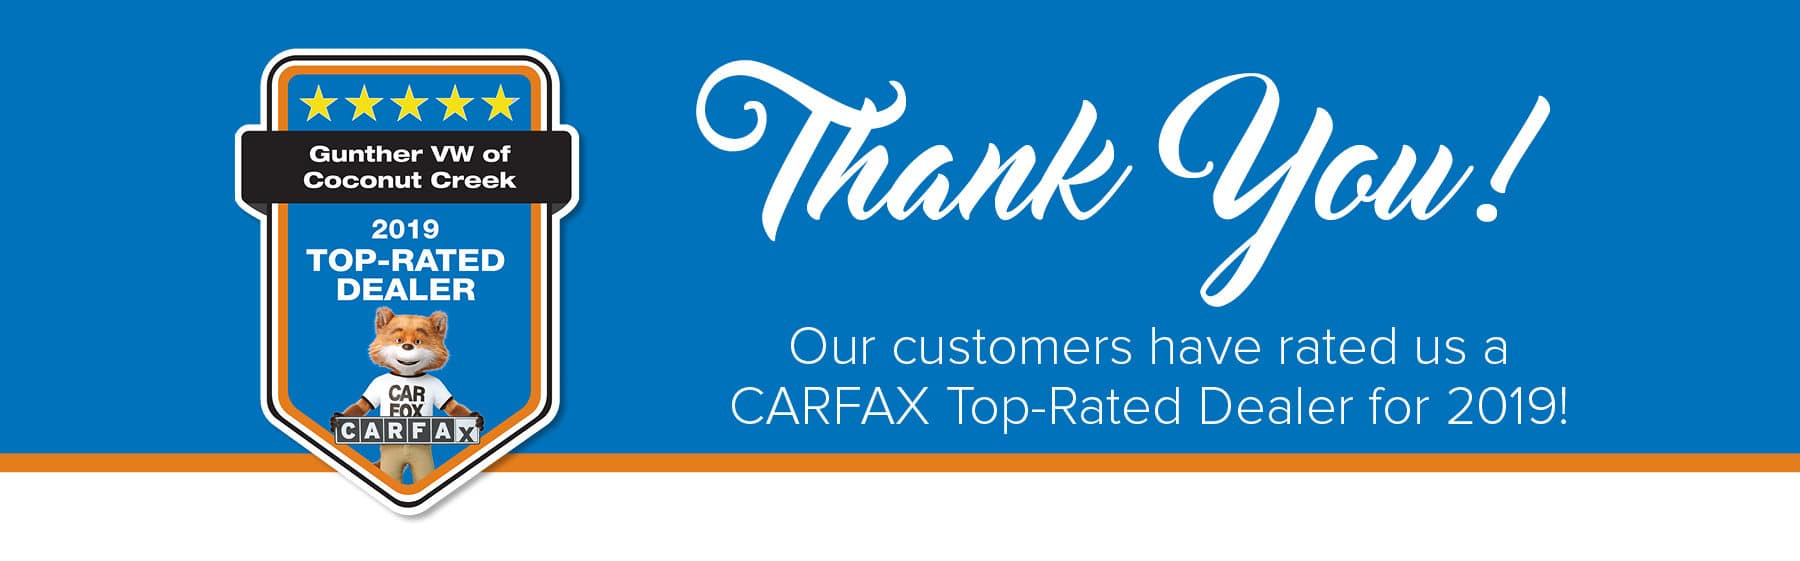 Thank you! Our customers have rated us a CARFAX Top-Rated Dealer for 2019!